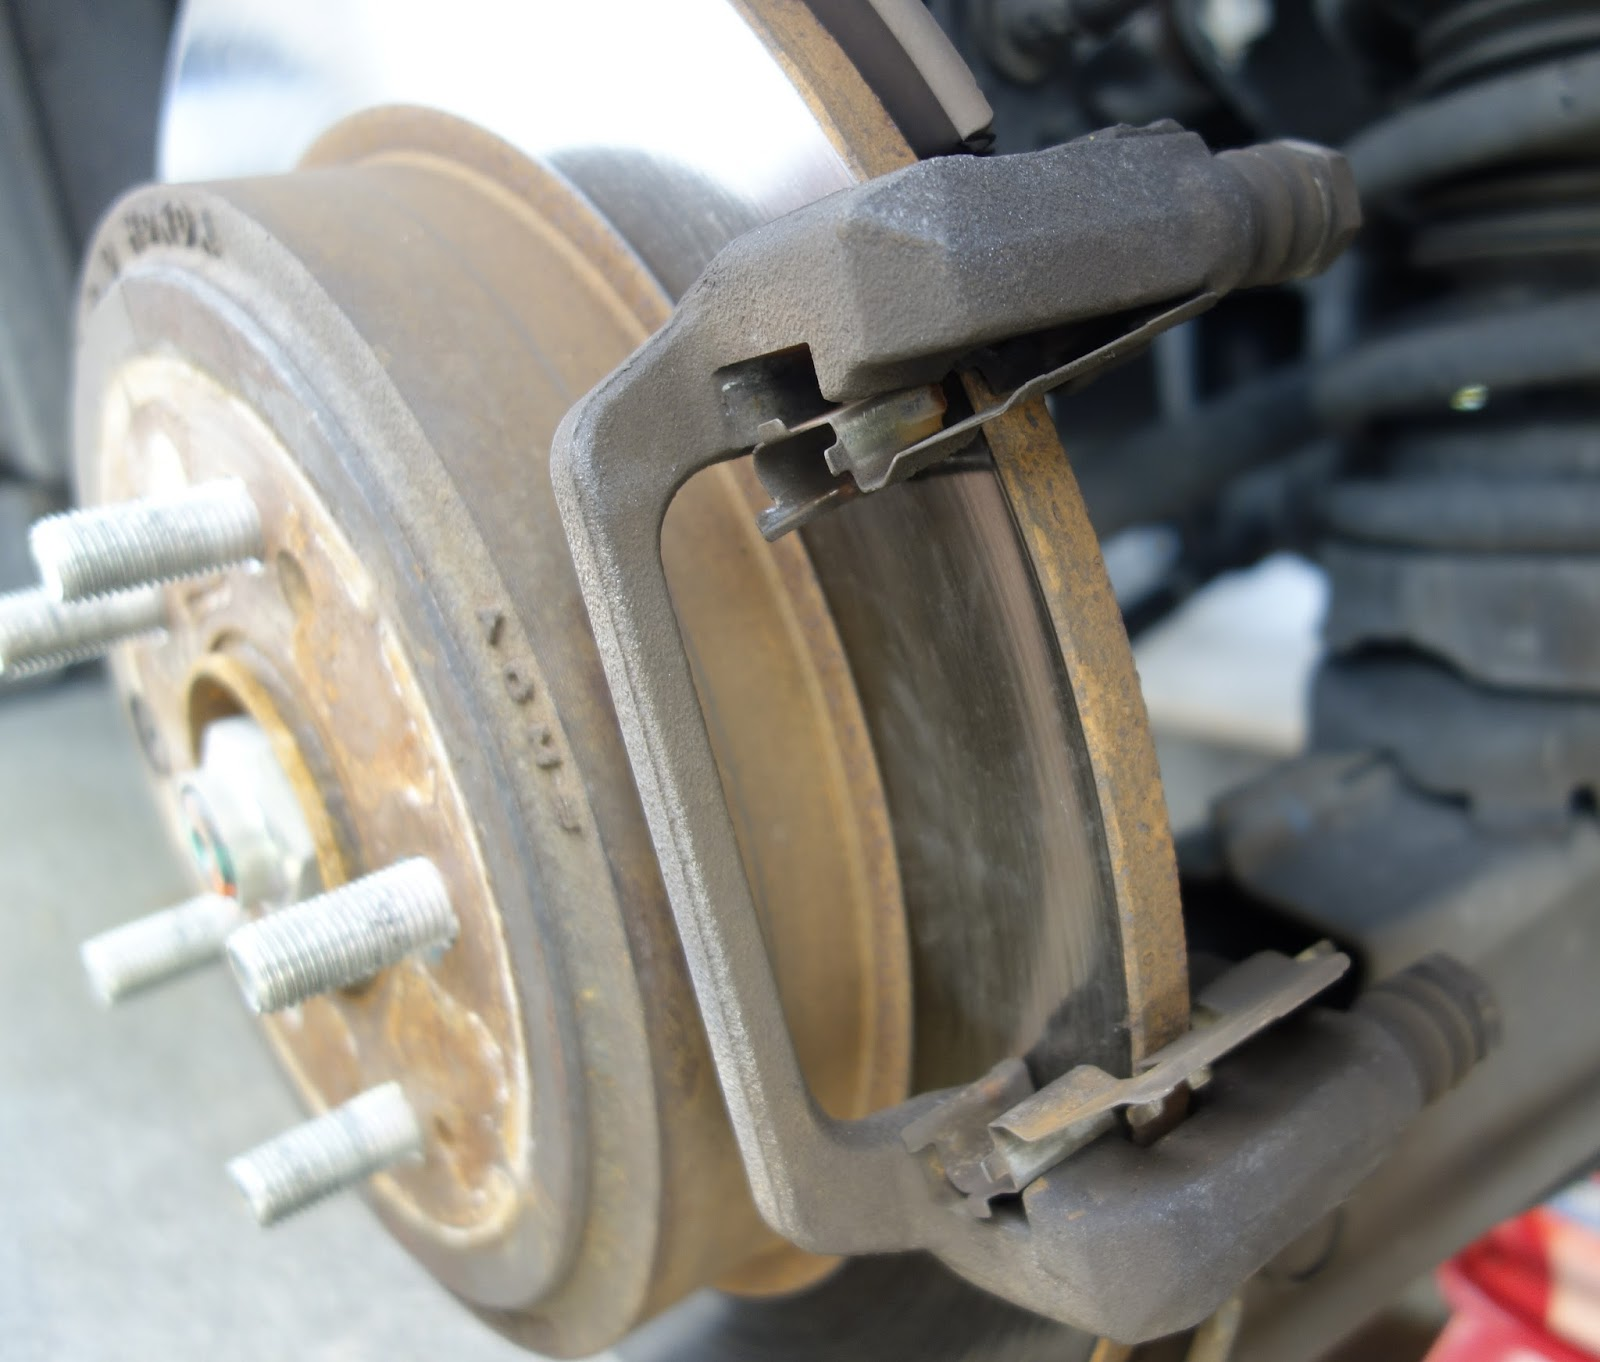 Experiences With My Car: How To Change Brake Pads And